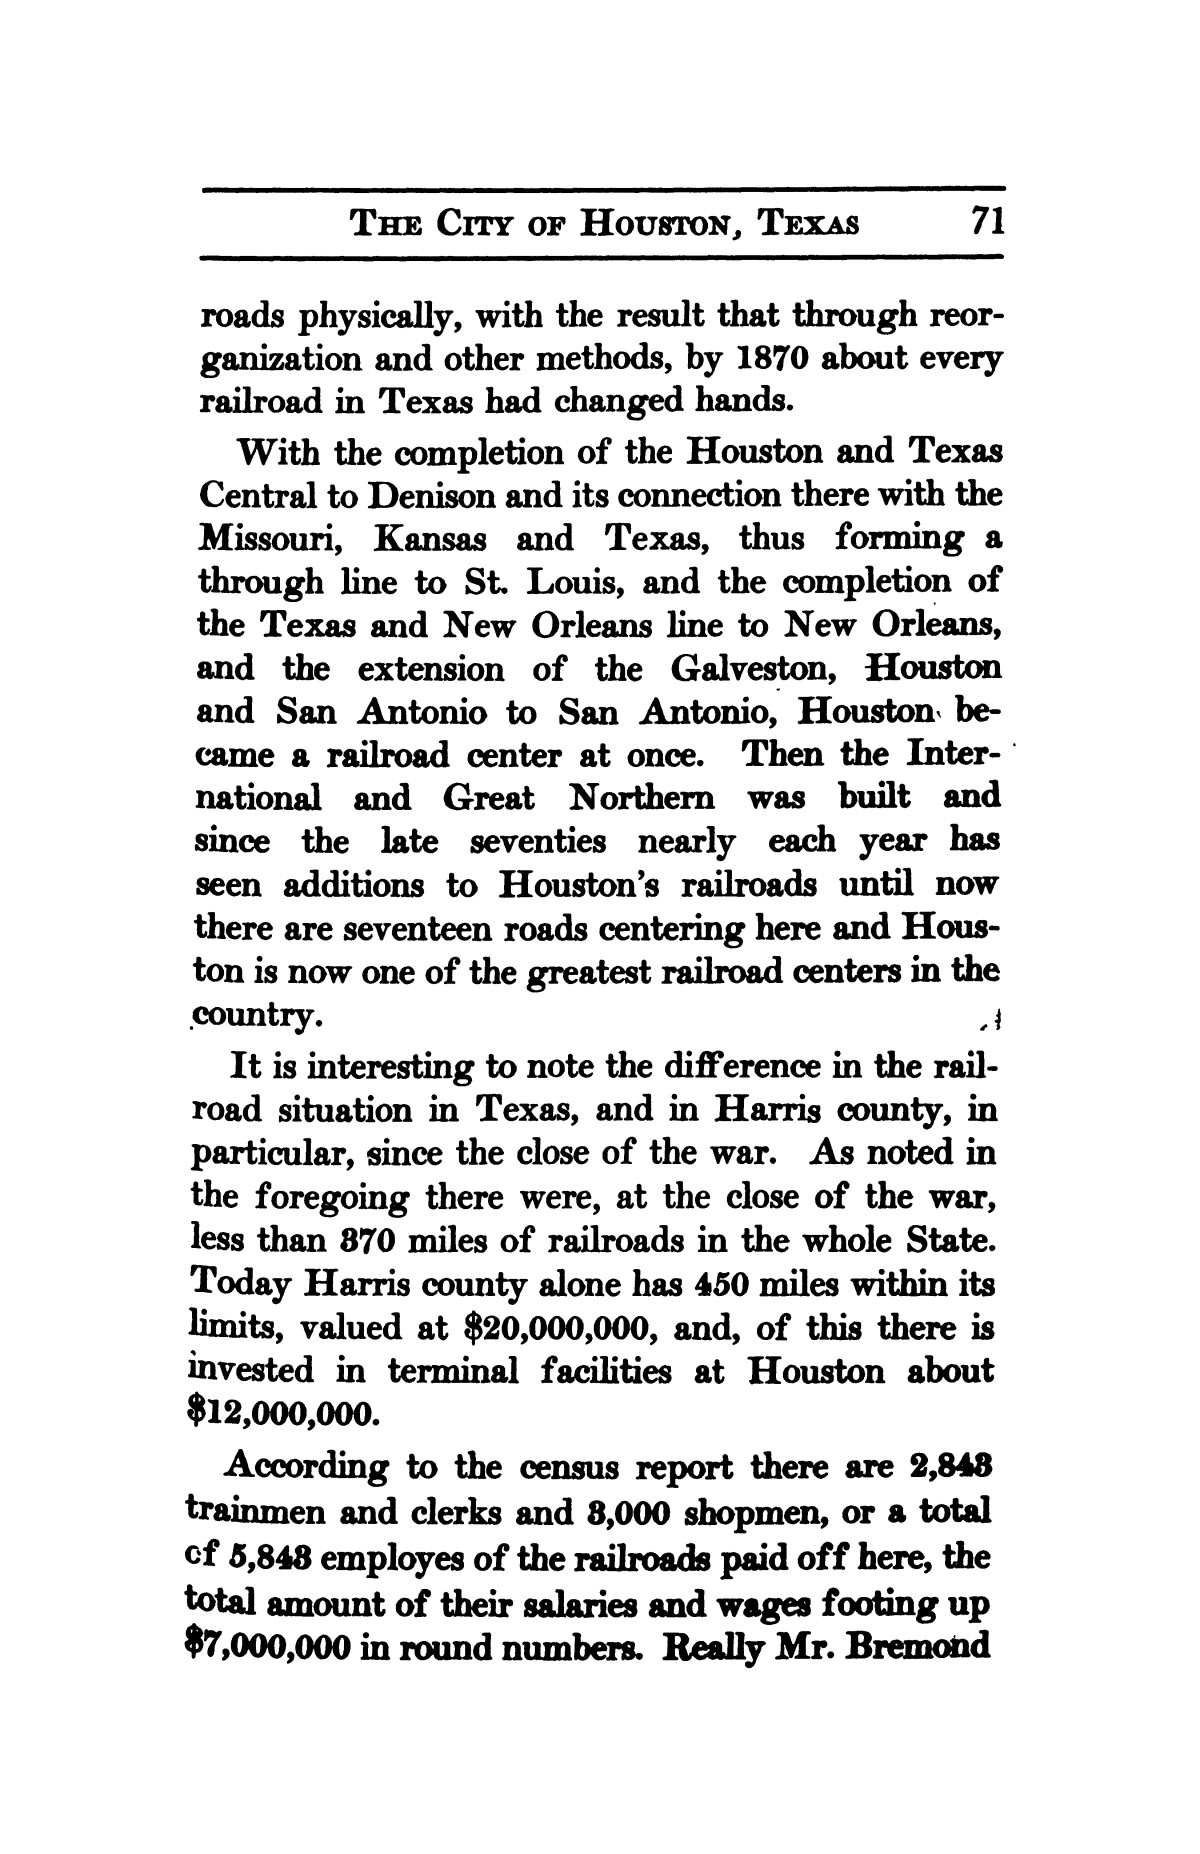 A thumb-nail history of the city of Houston, Texas, from its founding in 1836 to the year 1912                                                                                                      71